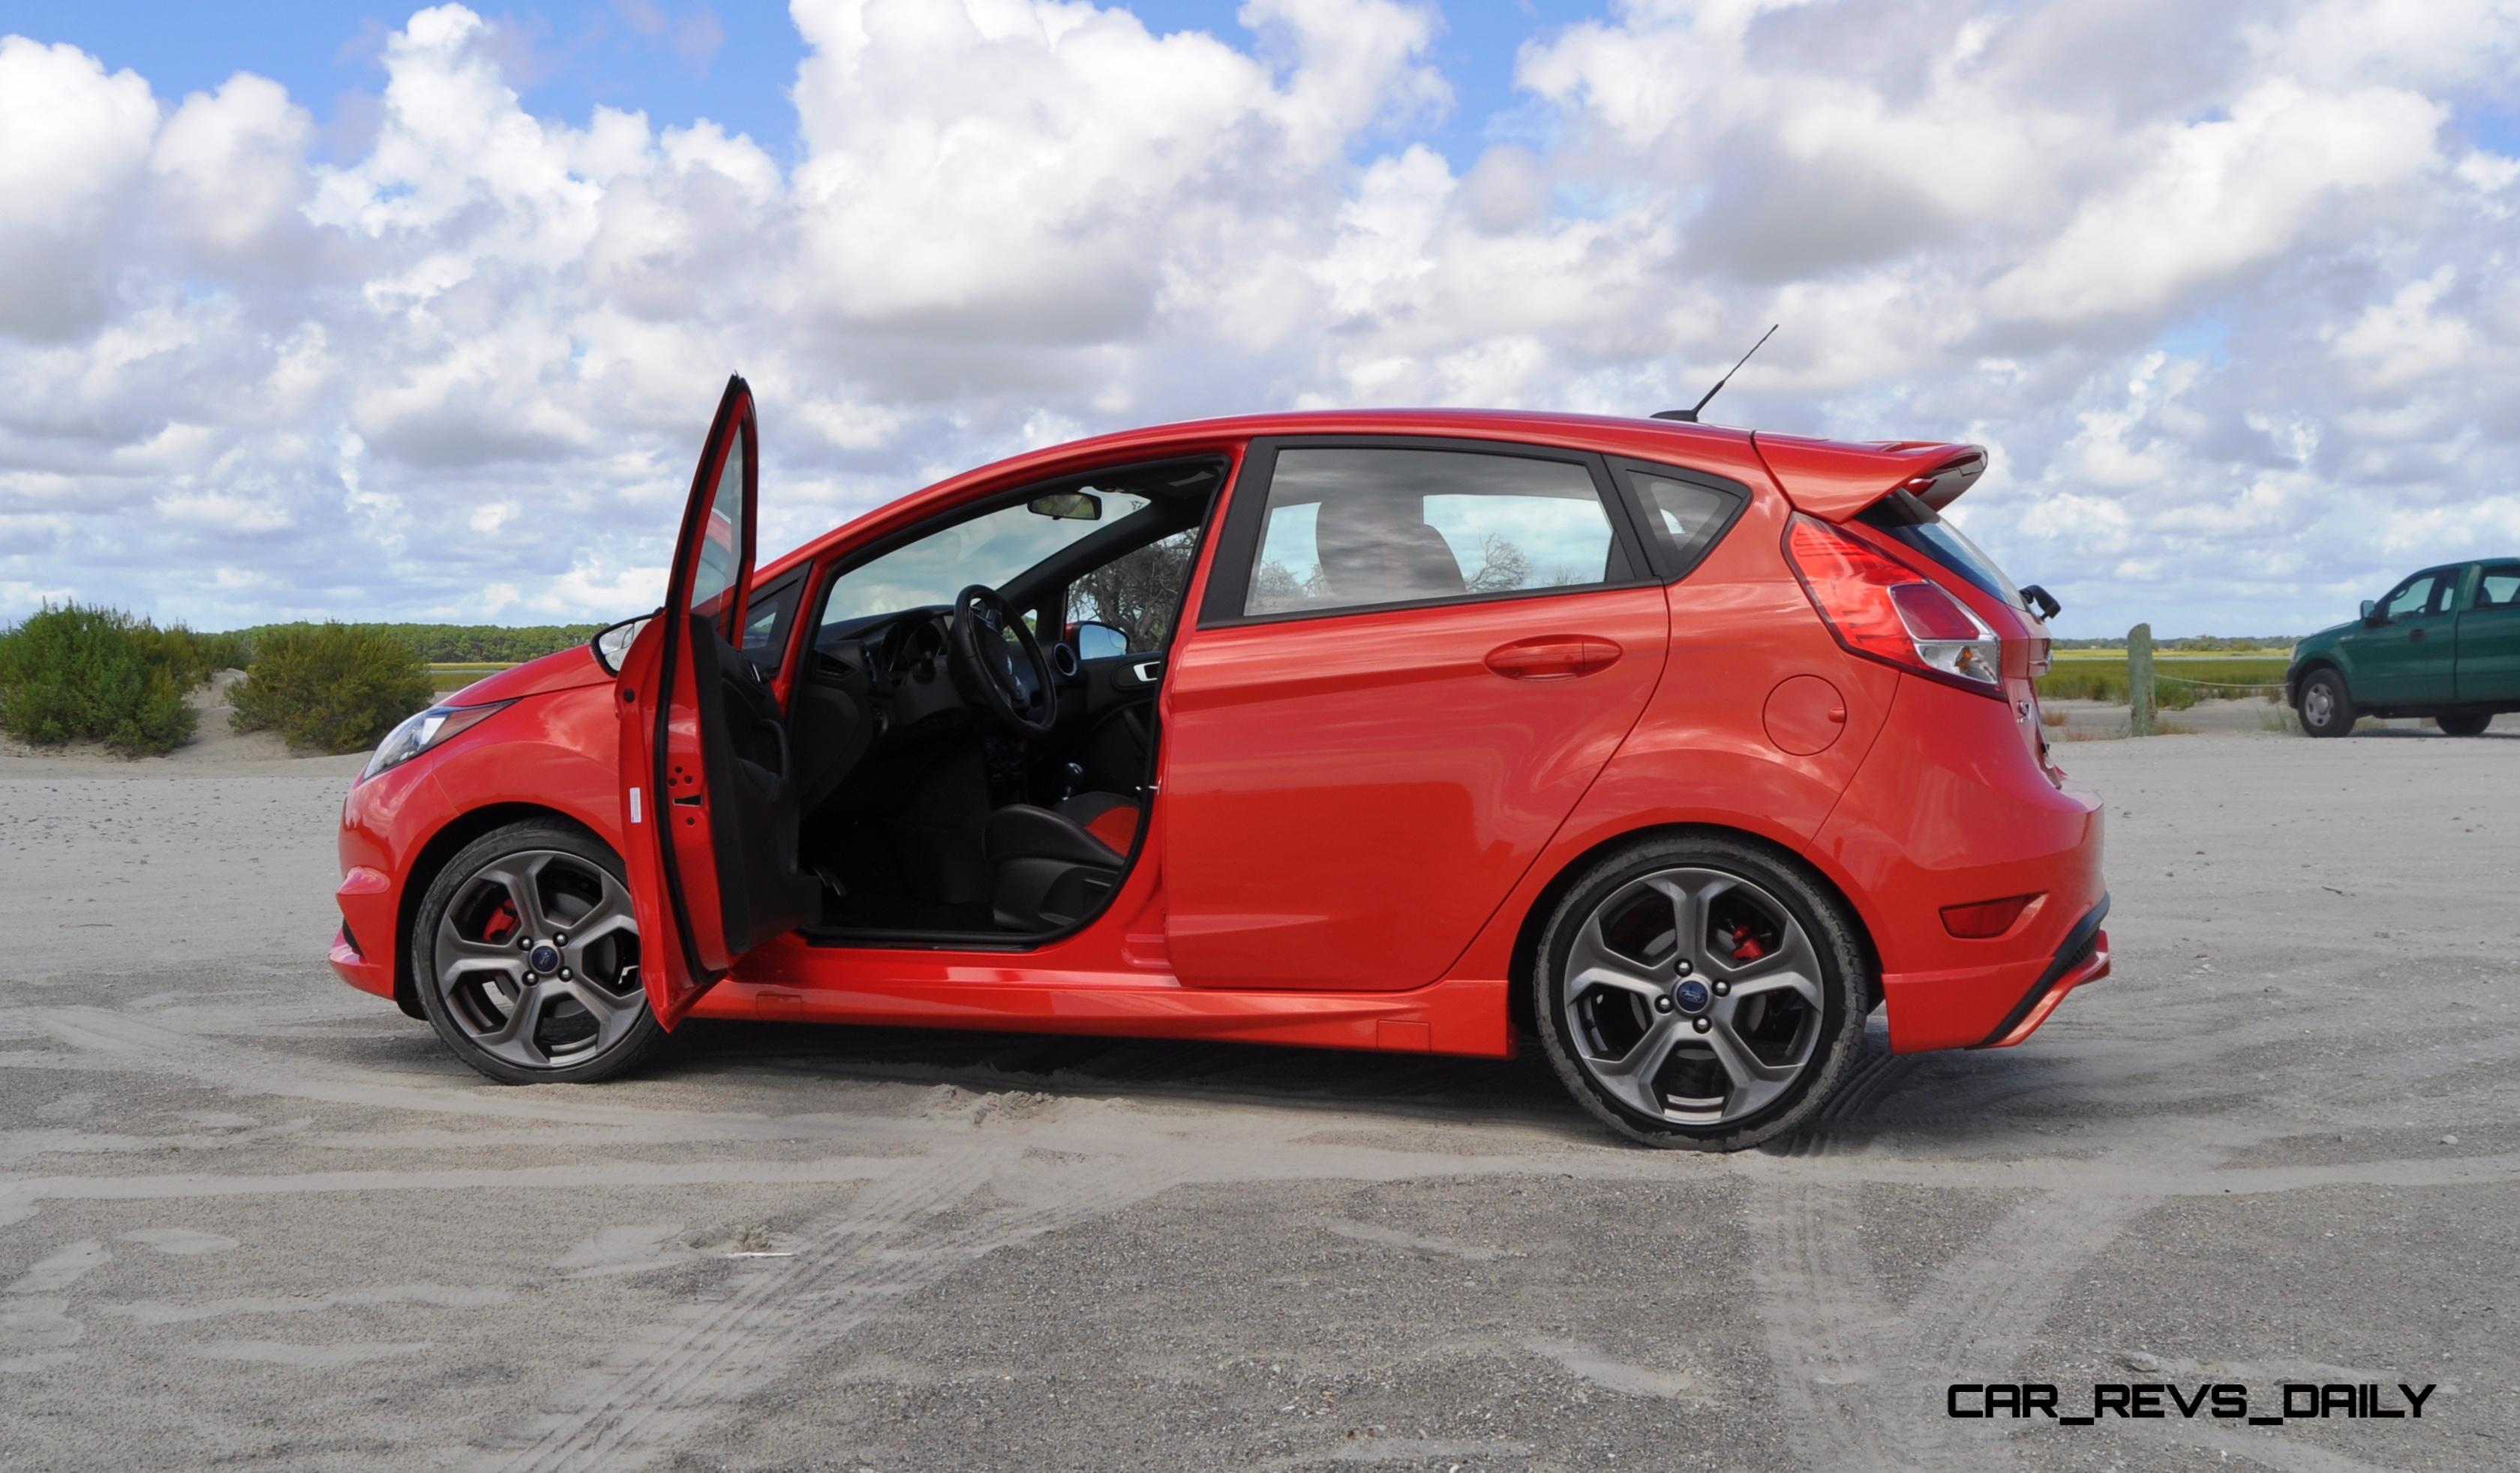 ford cargurus fiesta pic cars overview